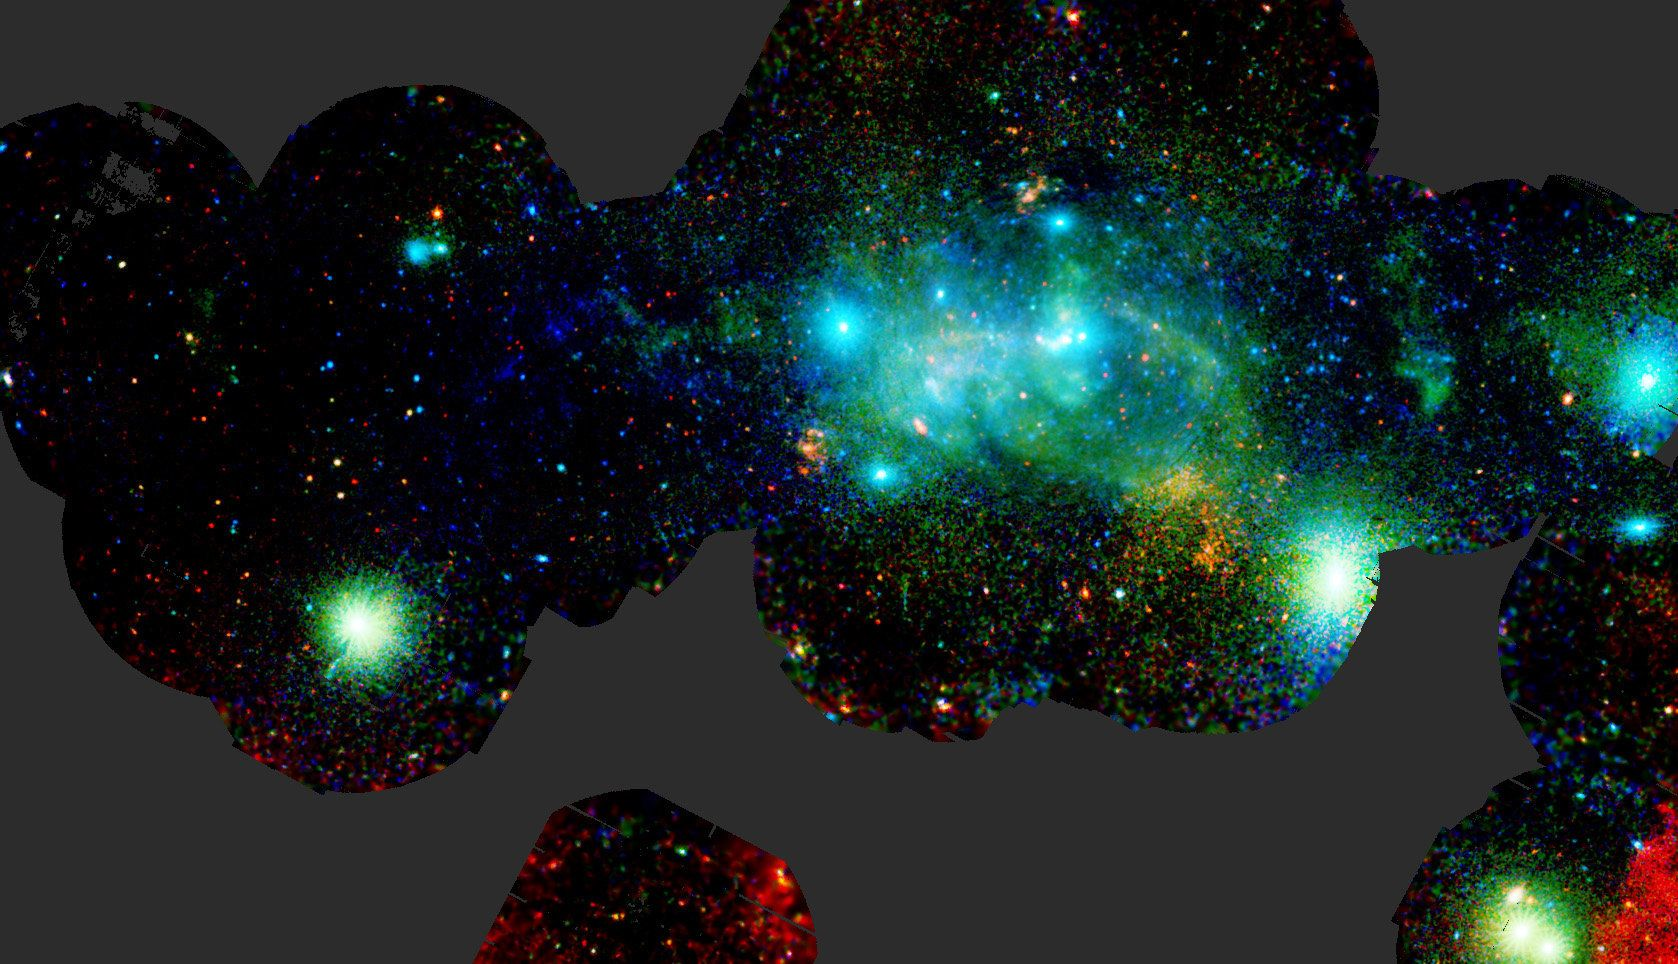 """<p><span style=""""color: #031e31; font-family: verdana, arial; font-size: 12px; background-color: #ffffff;"""">The central regions of our galaxy, the Milky Way, seen in x-rays by ESA's XMM-Newton X-ray observatory.</span></p>"""